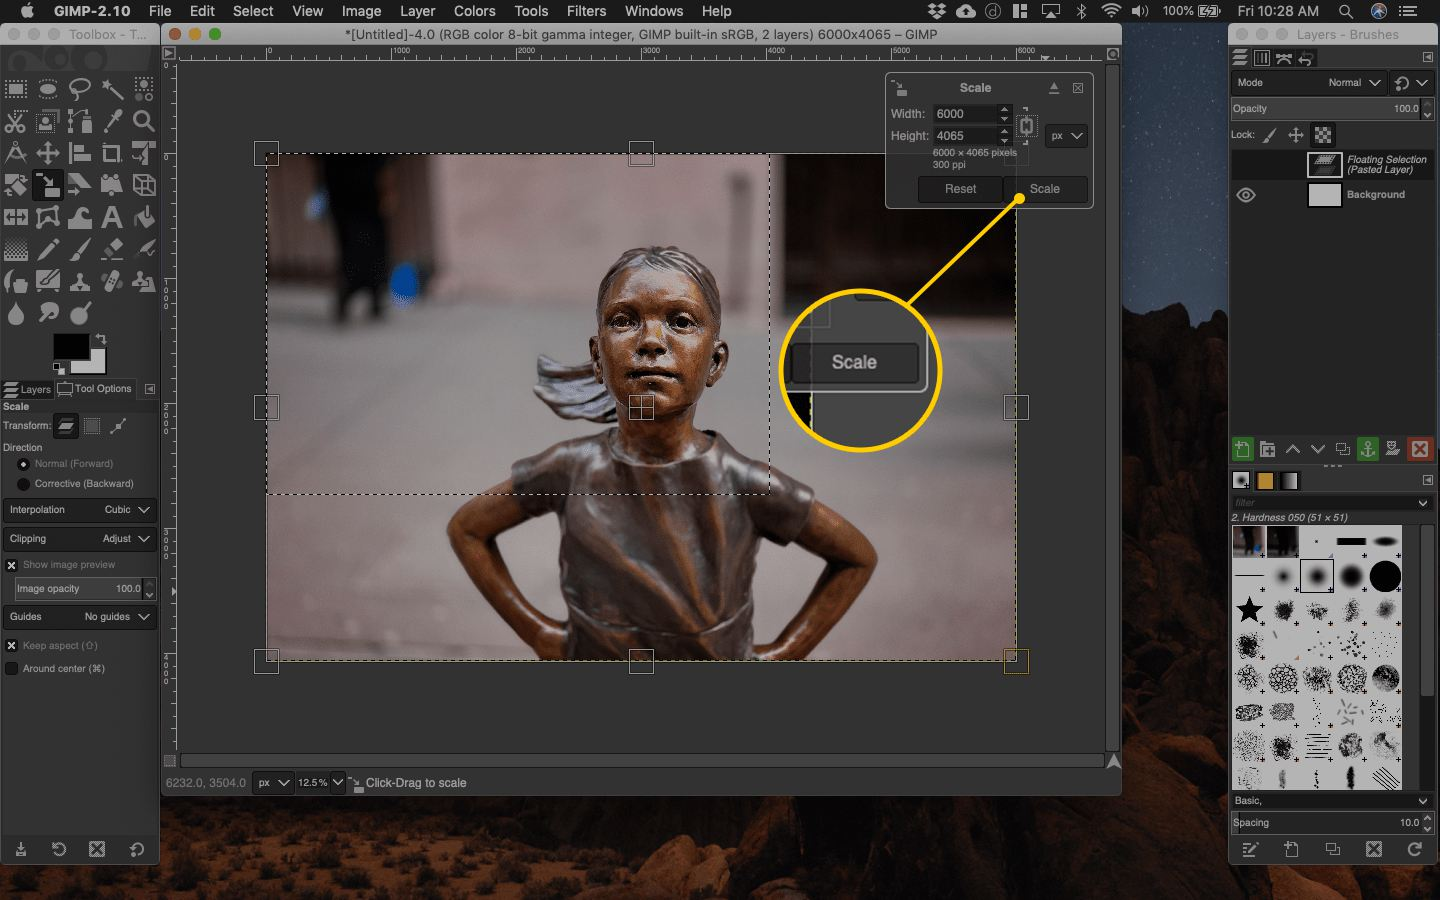 Scale button in Gimp for macOS